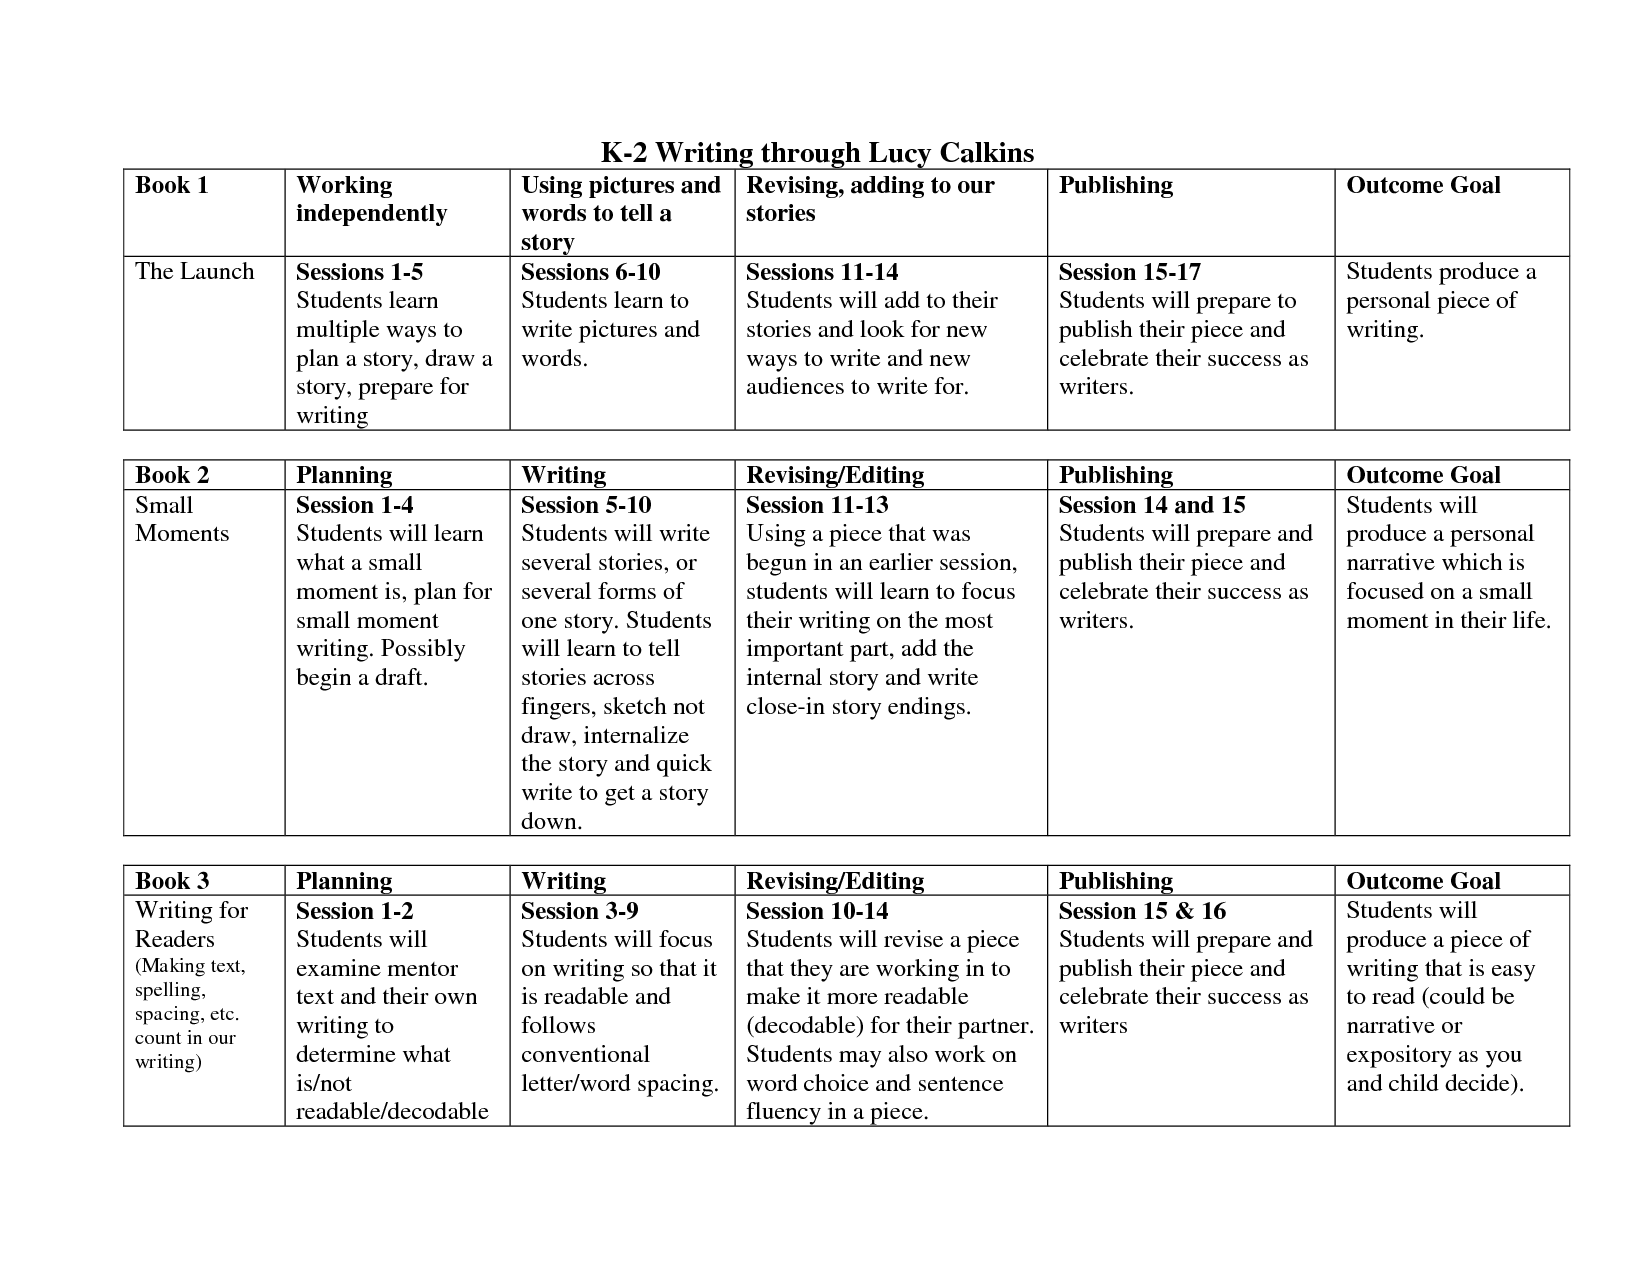 Lucy calkins lesson plan template writing through lucy for Writers workshop lesson plan template